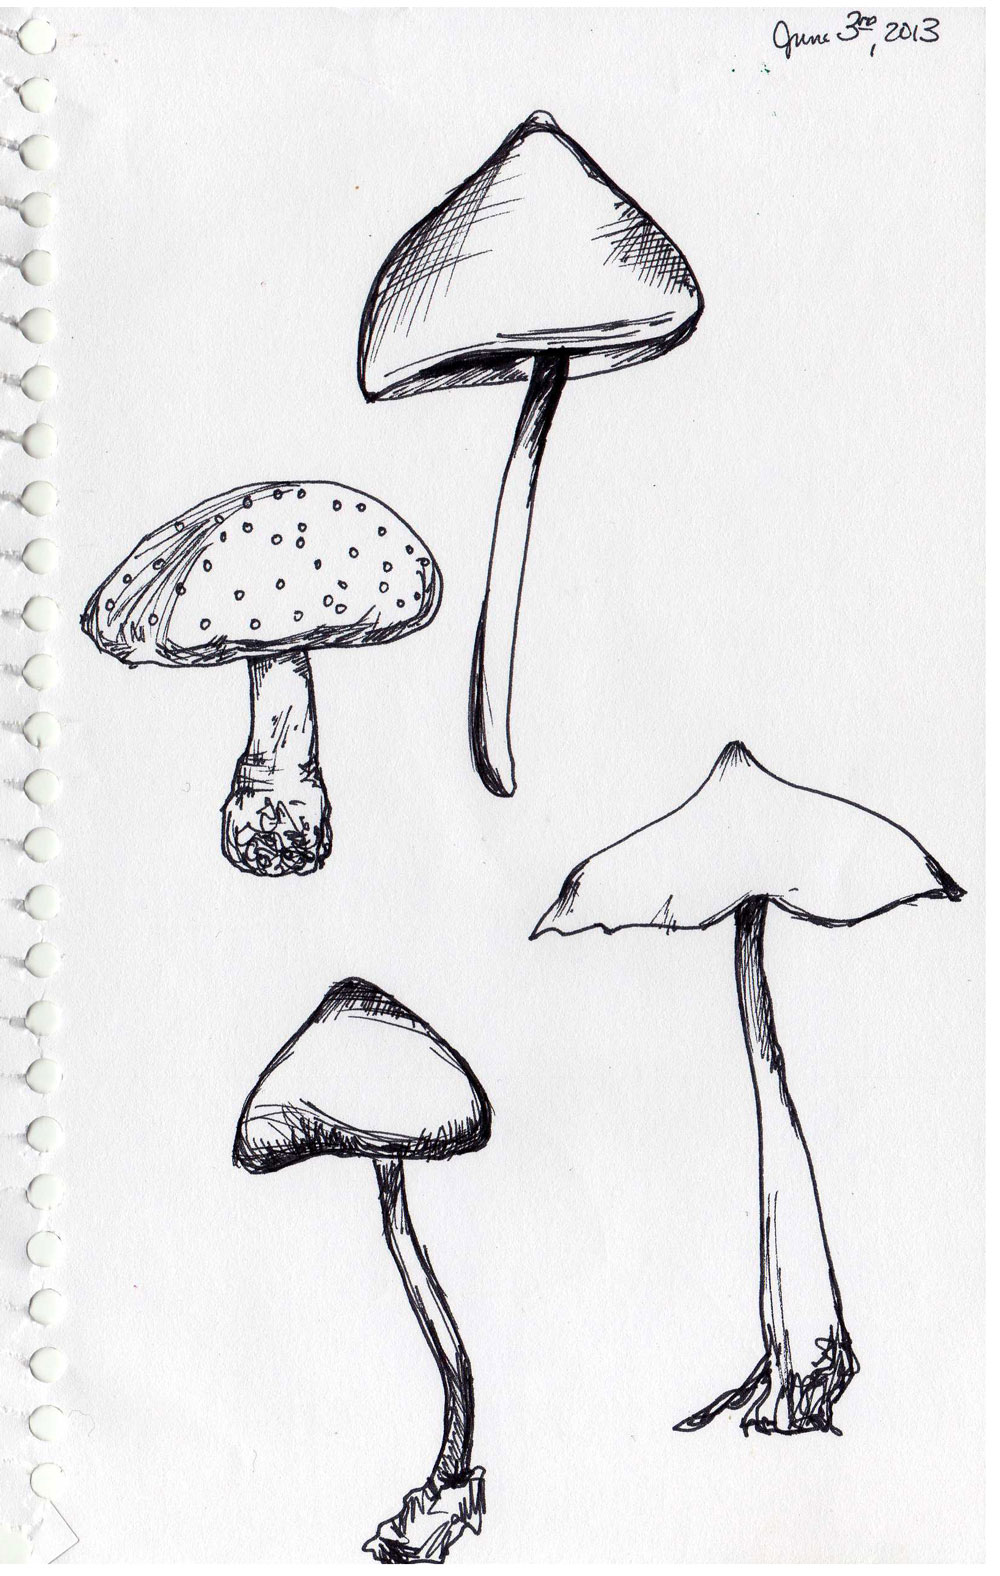 1000x1576 Sketchbook By Kendra Shedenhelm So Many Mushrooms